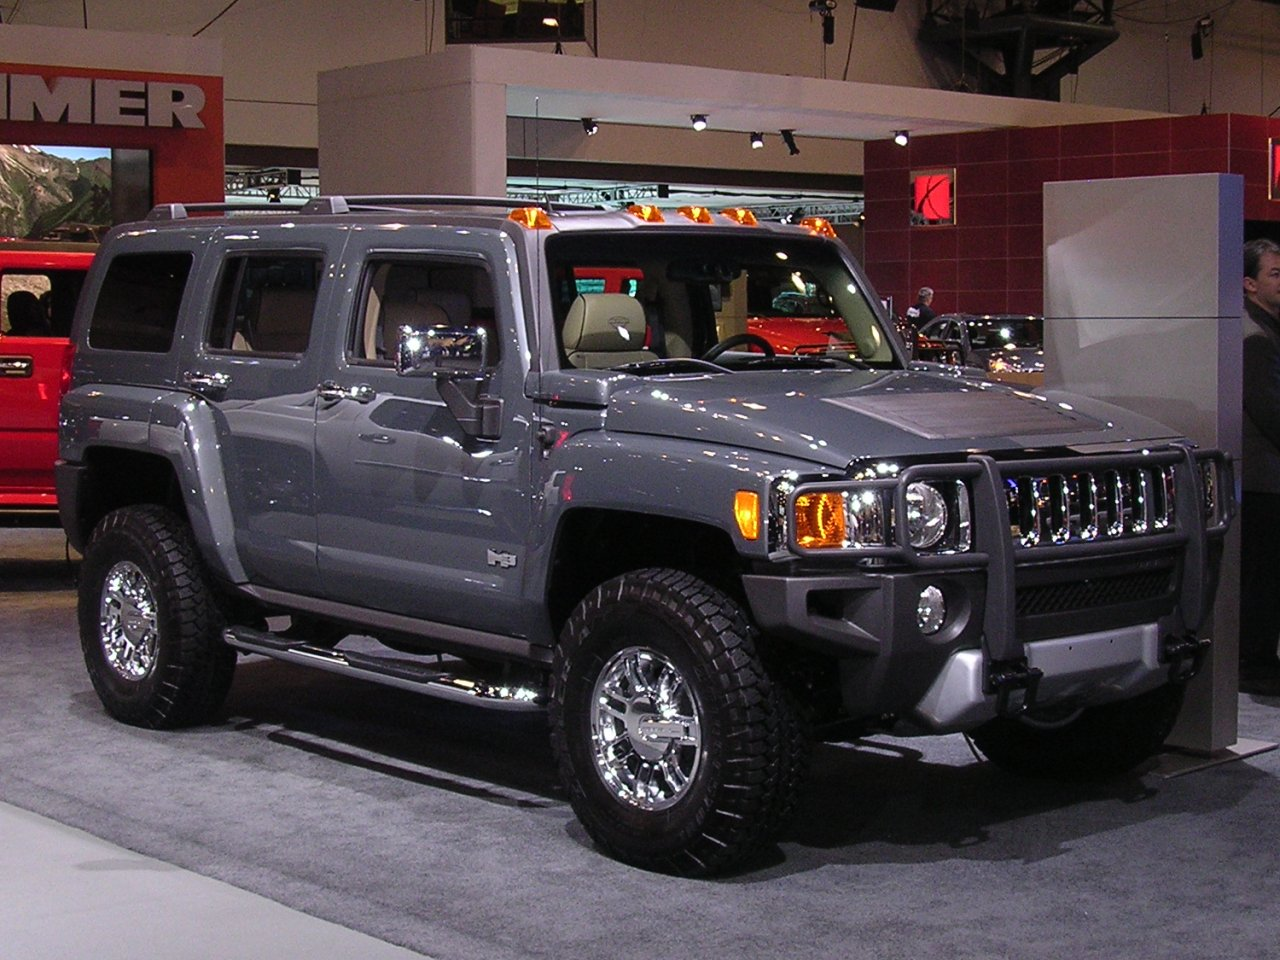 Hummer Truck Related Images Start 400 Weili Automotive Network